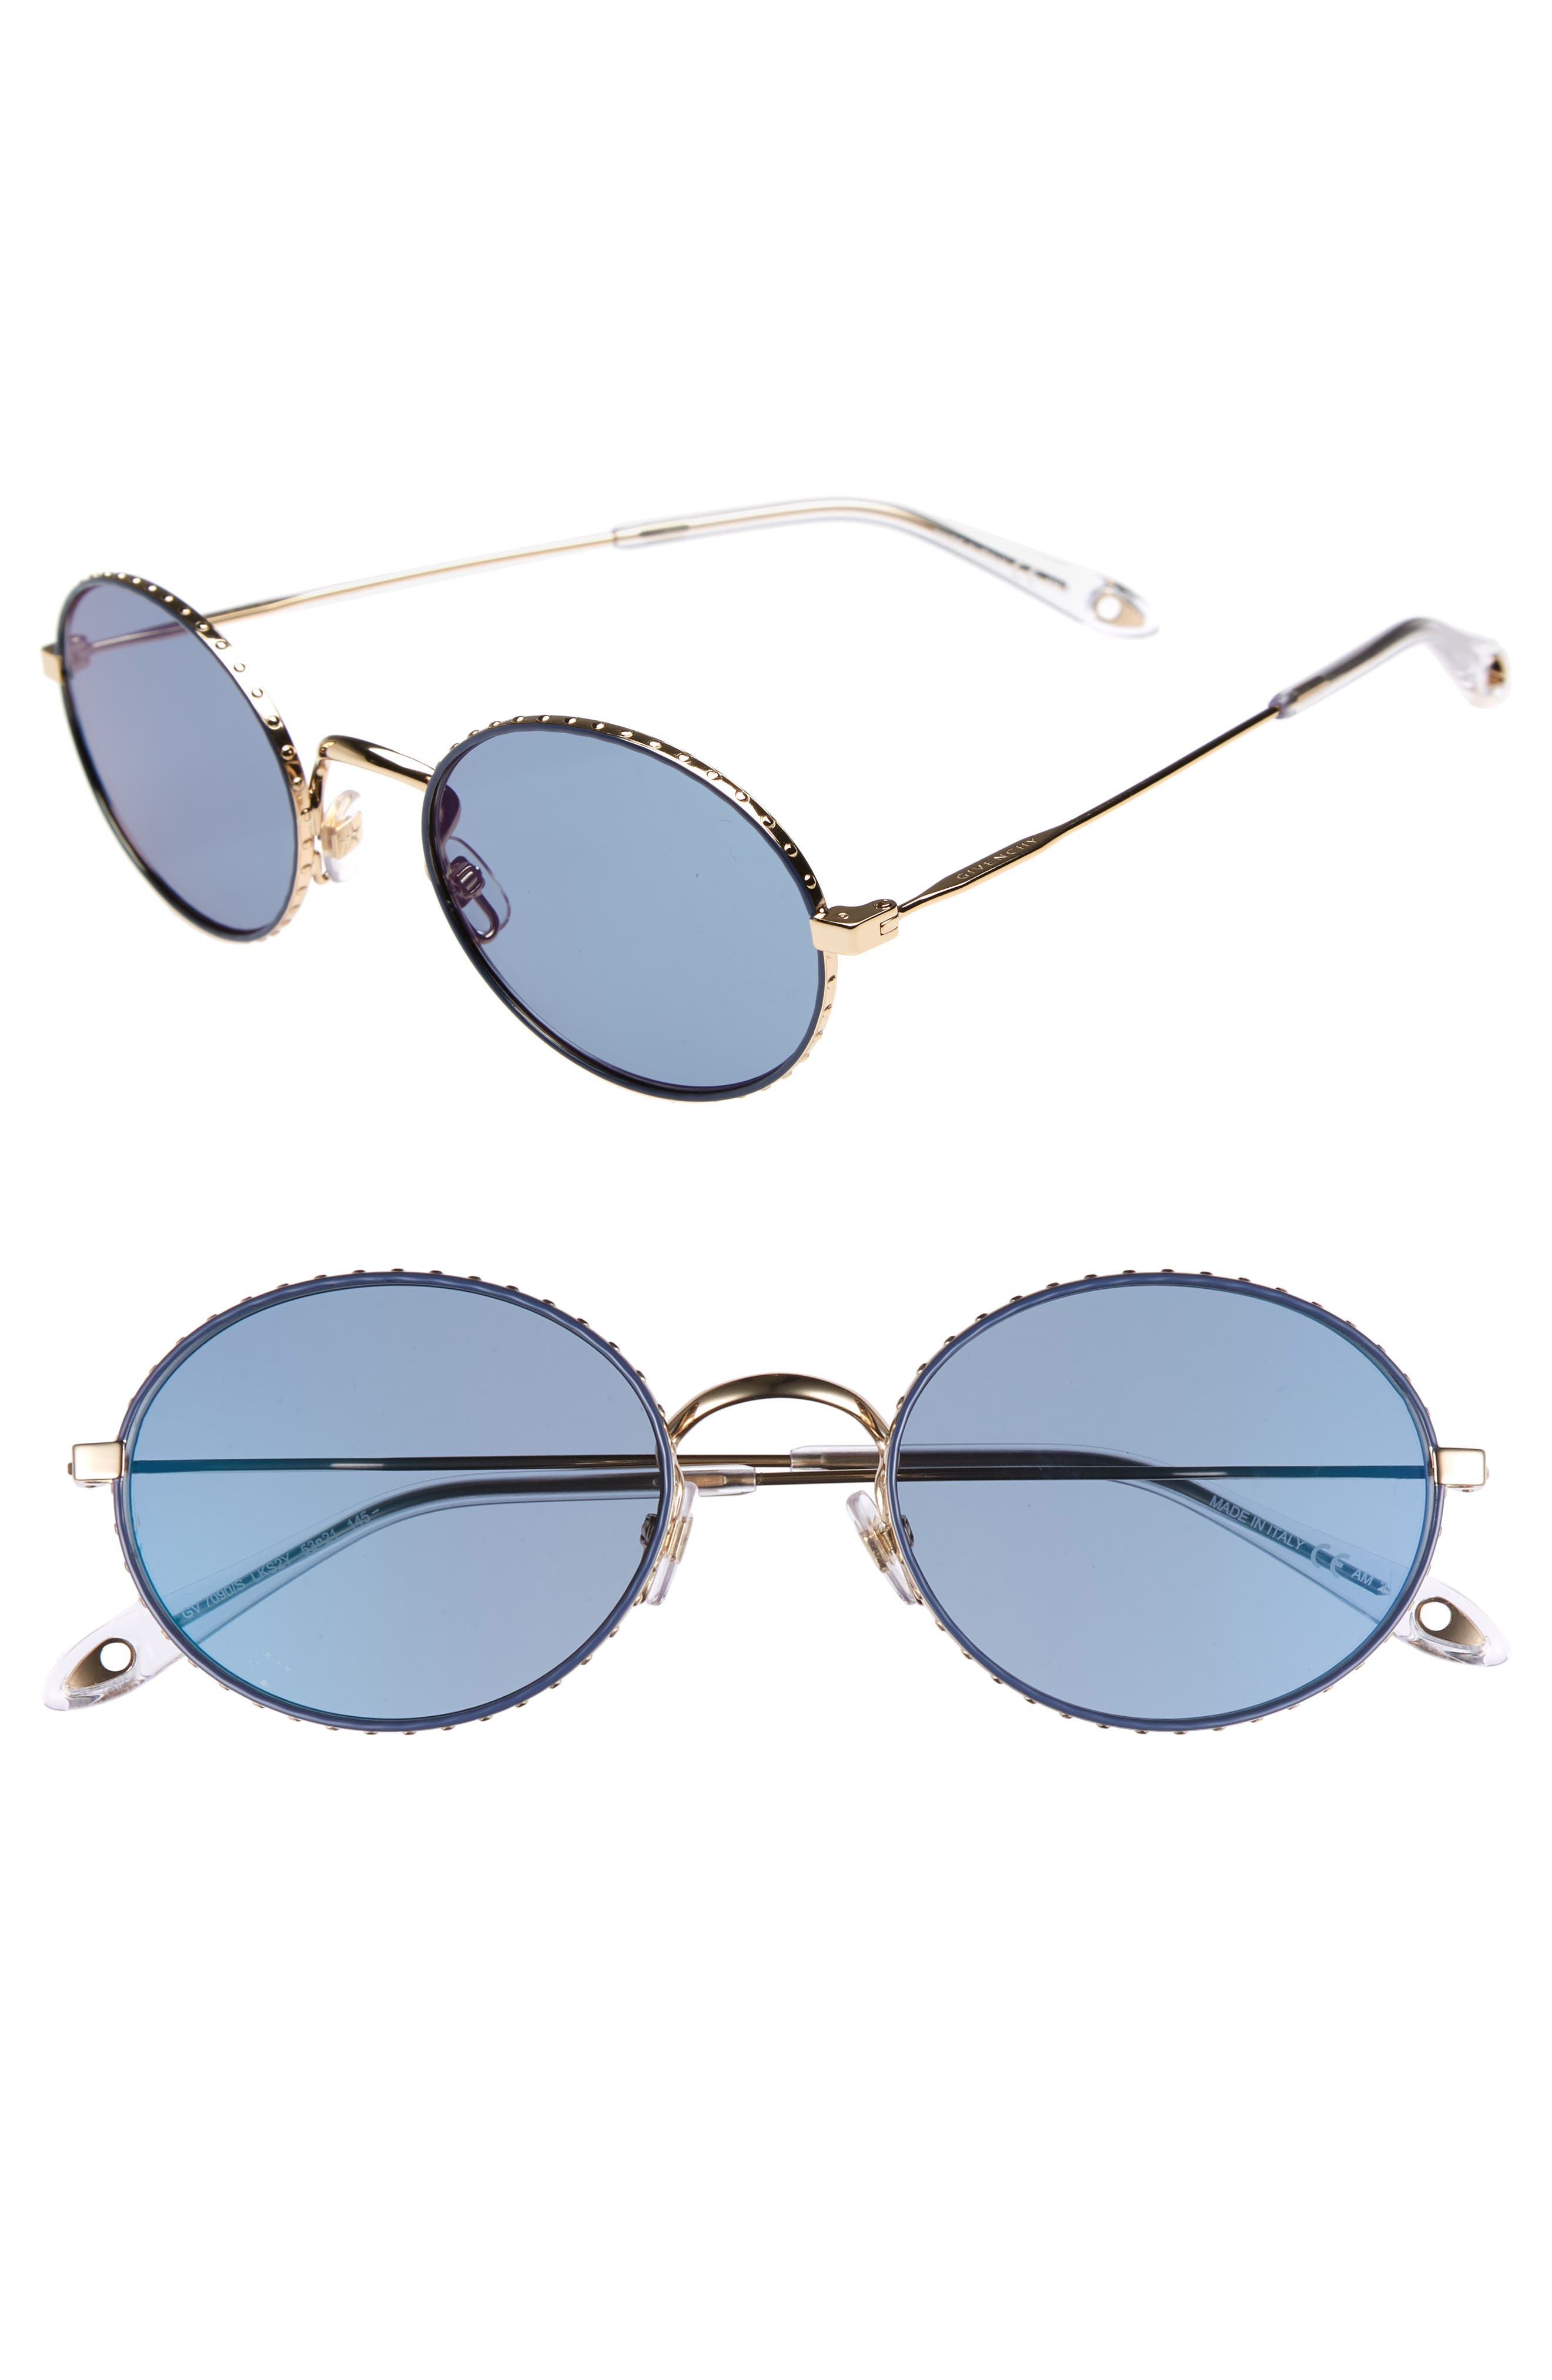 Main Image - Givenchy 53mm Oval Sunglasses